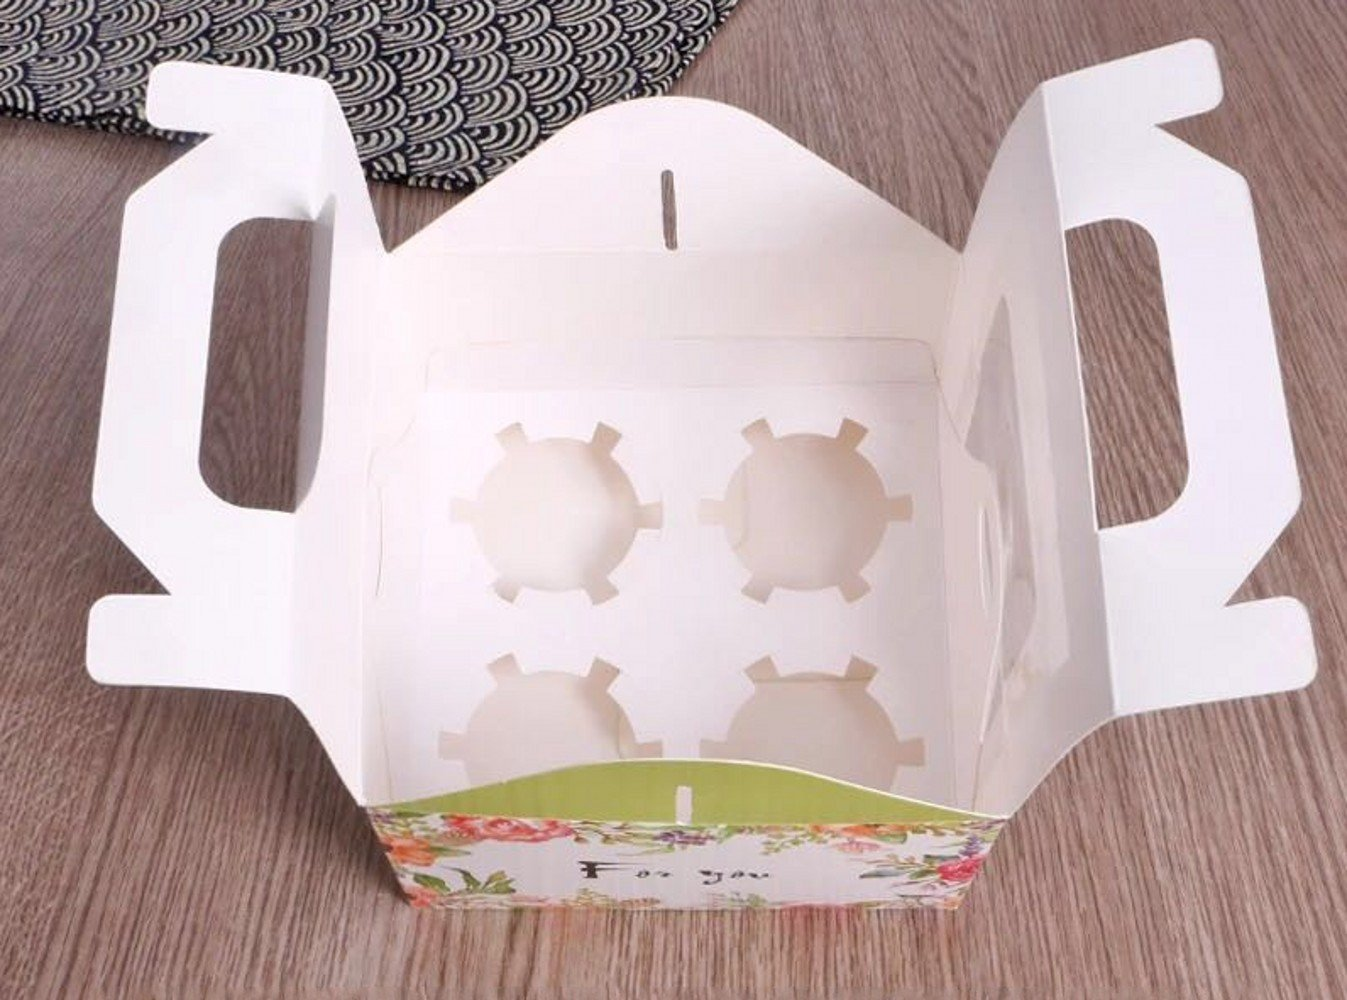 Clear Bakery Pastry Food Grade Flower Garden Design Cardboard 4 Cavity Cupcake Boxes With Window And Handle Wholesale (50)